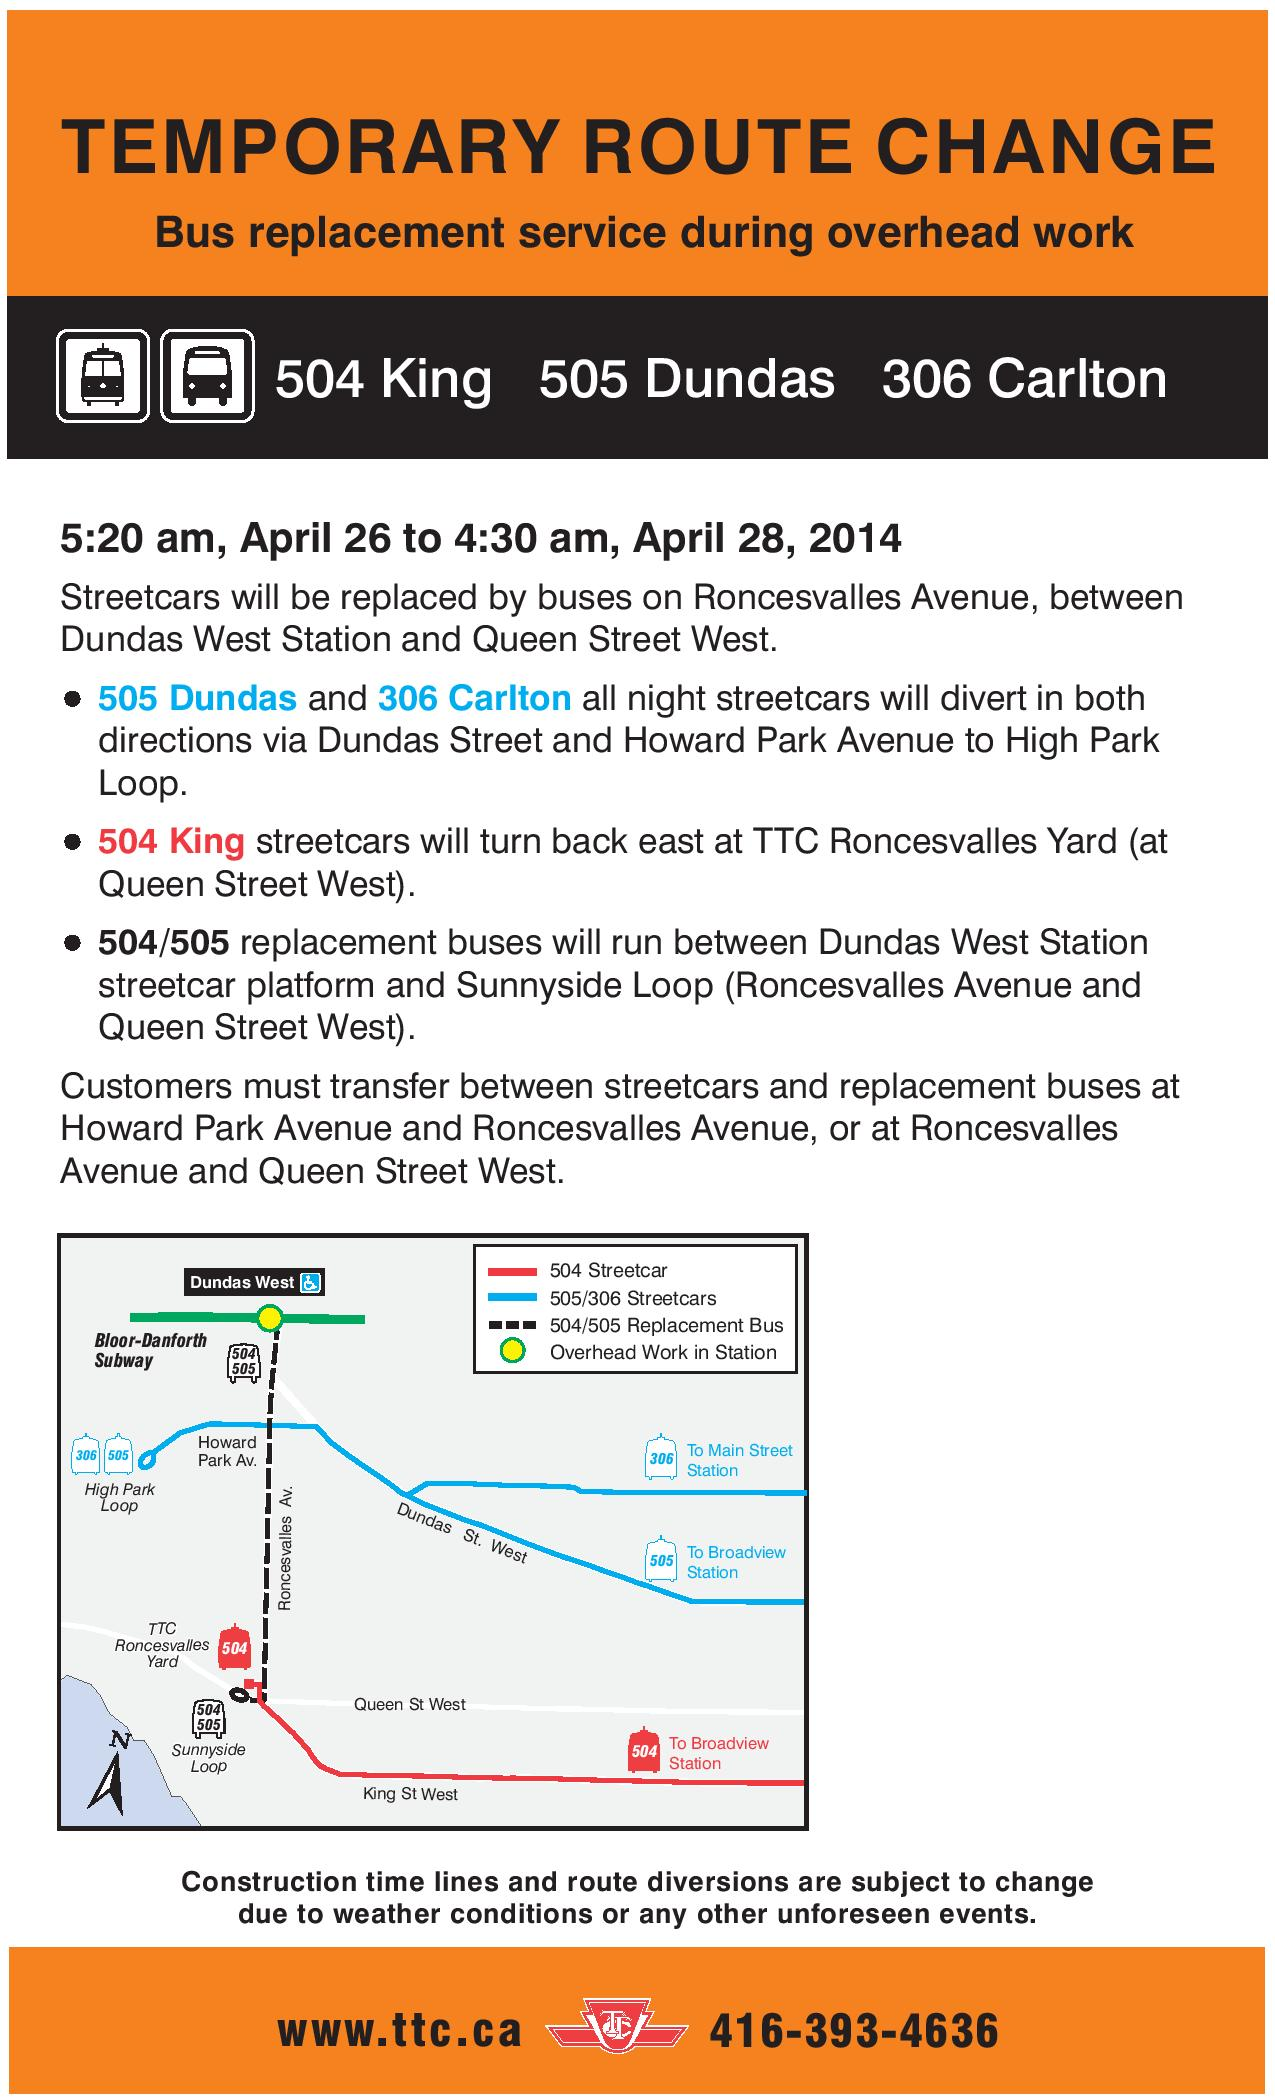 Temporarty Route Changes 520 am April 26 to 430 am April 28 2014-page-001